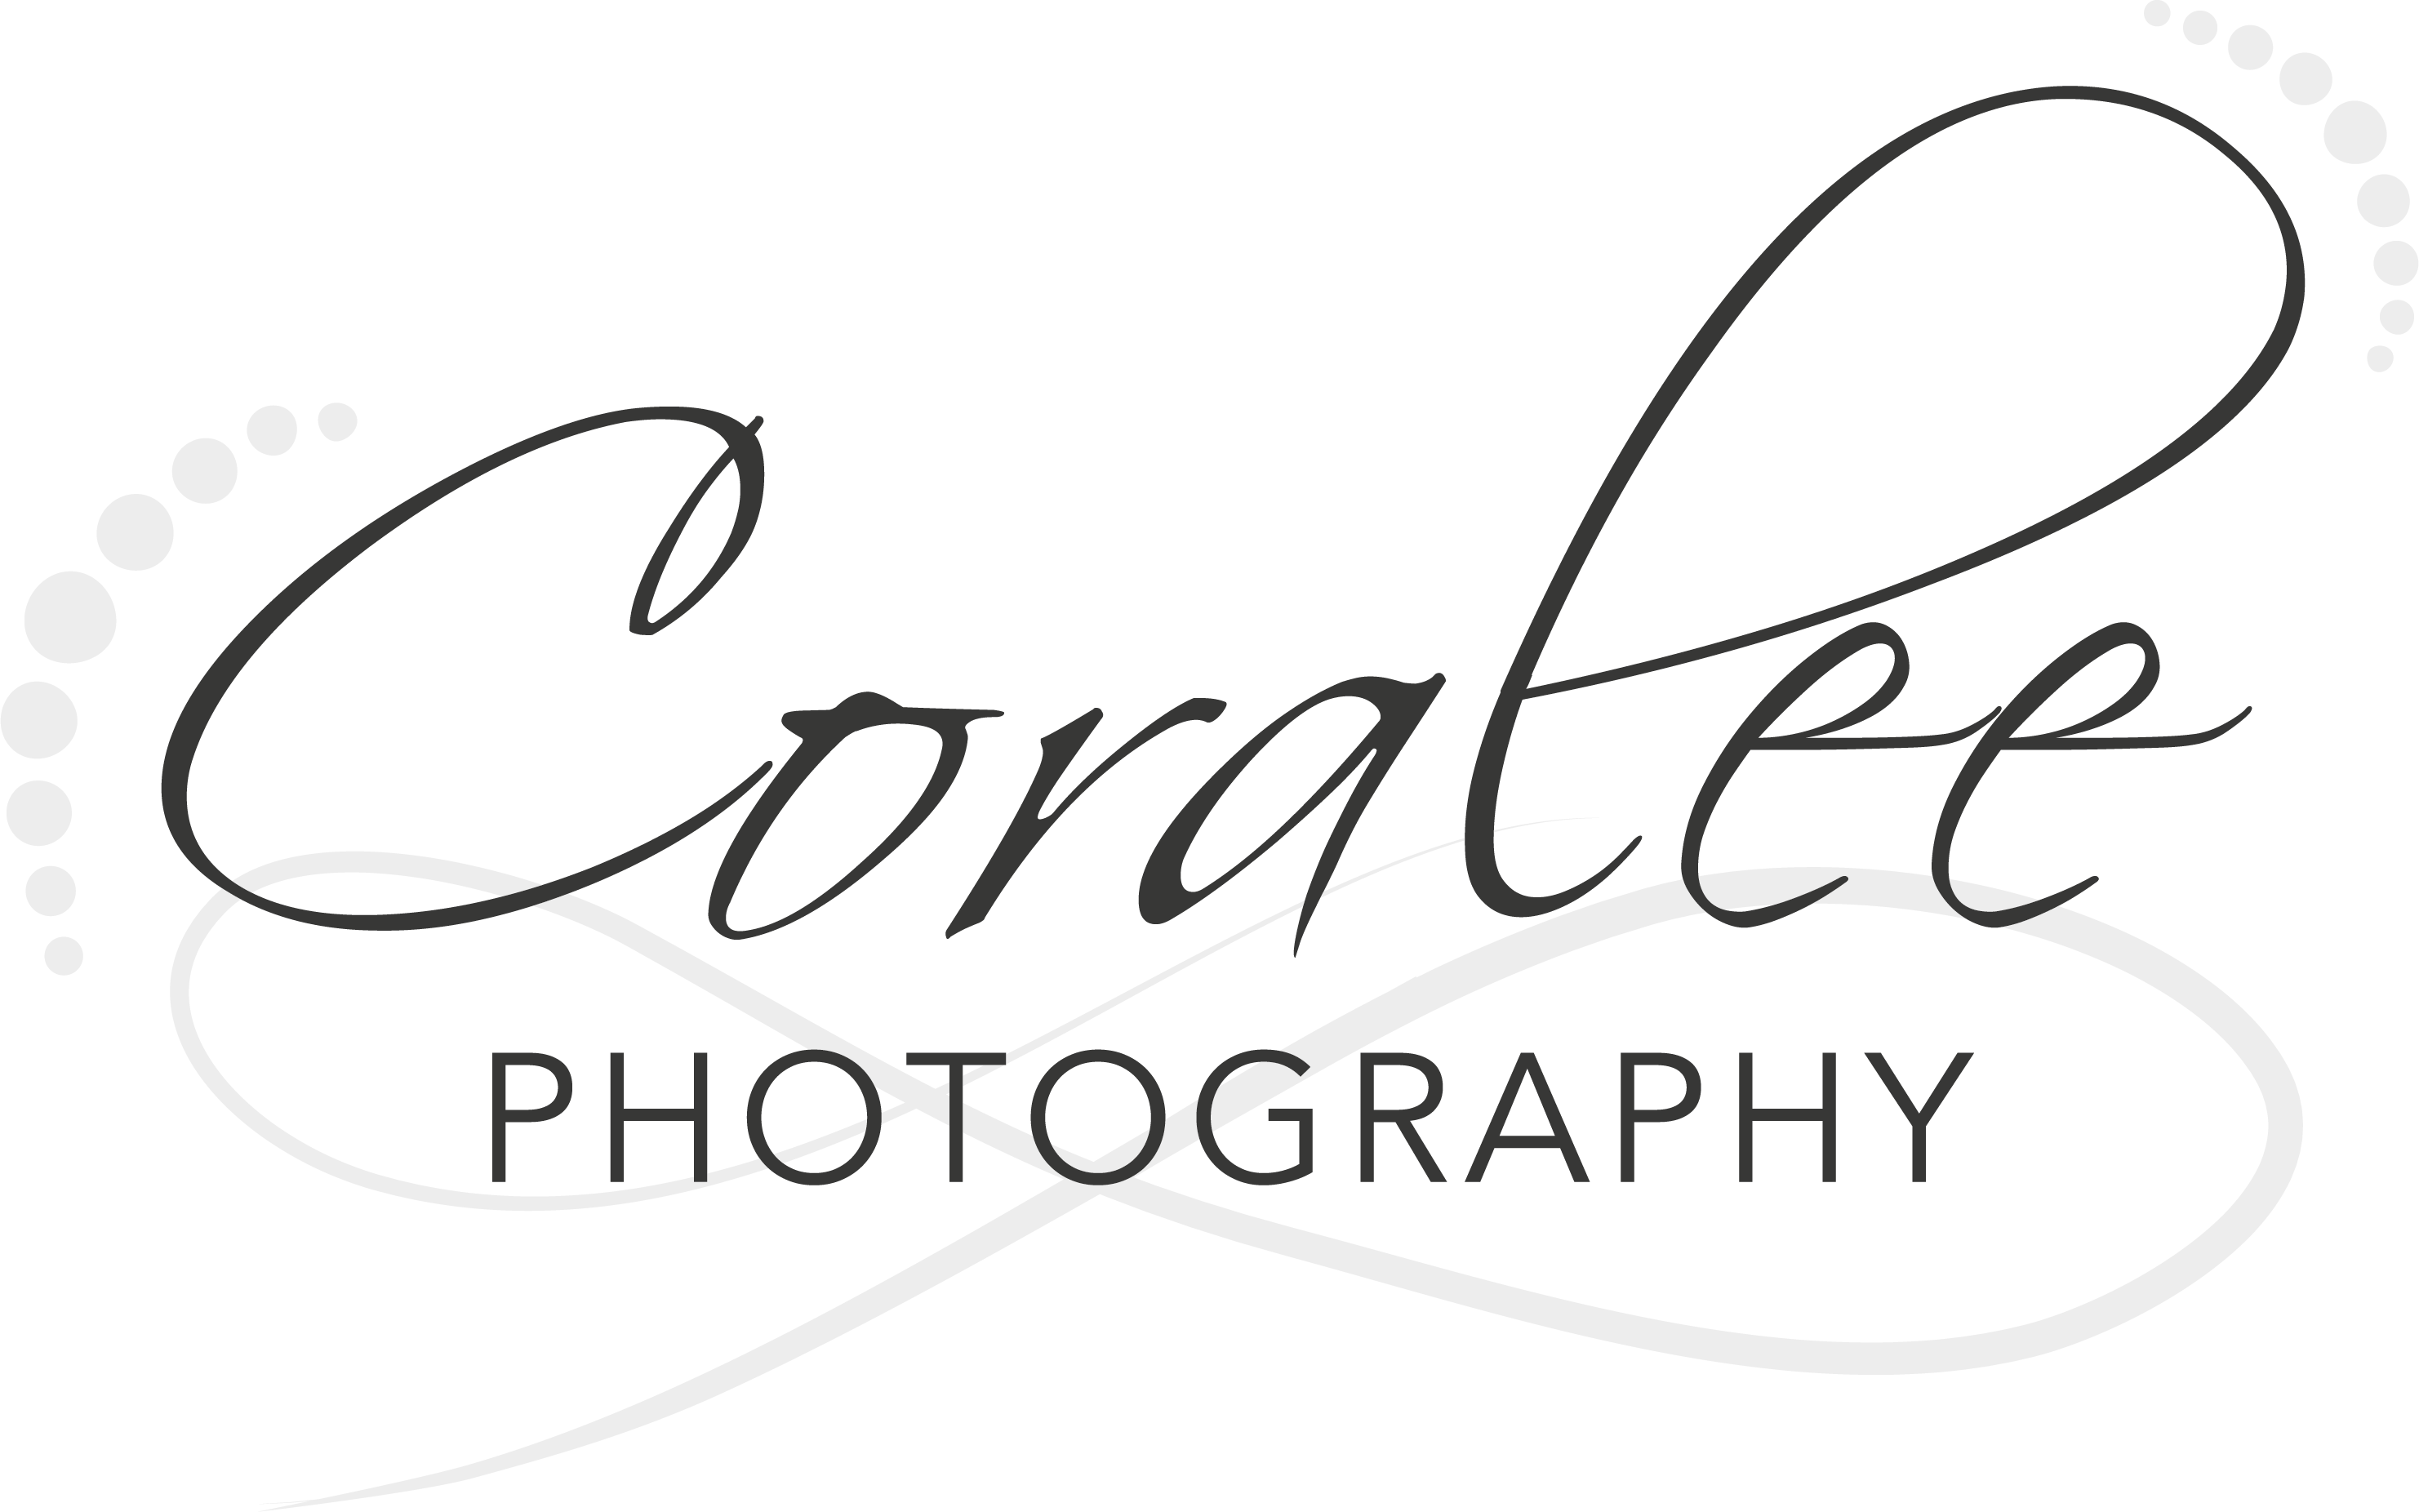 Coralee Photography